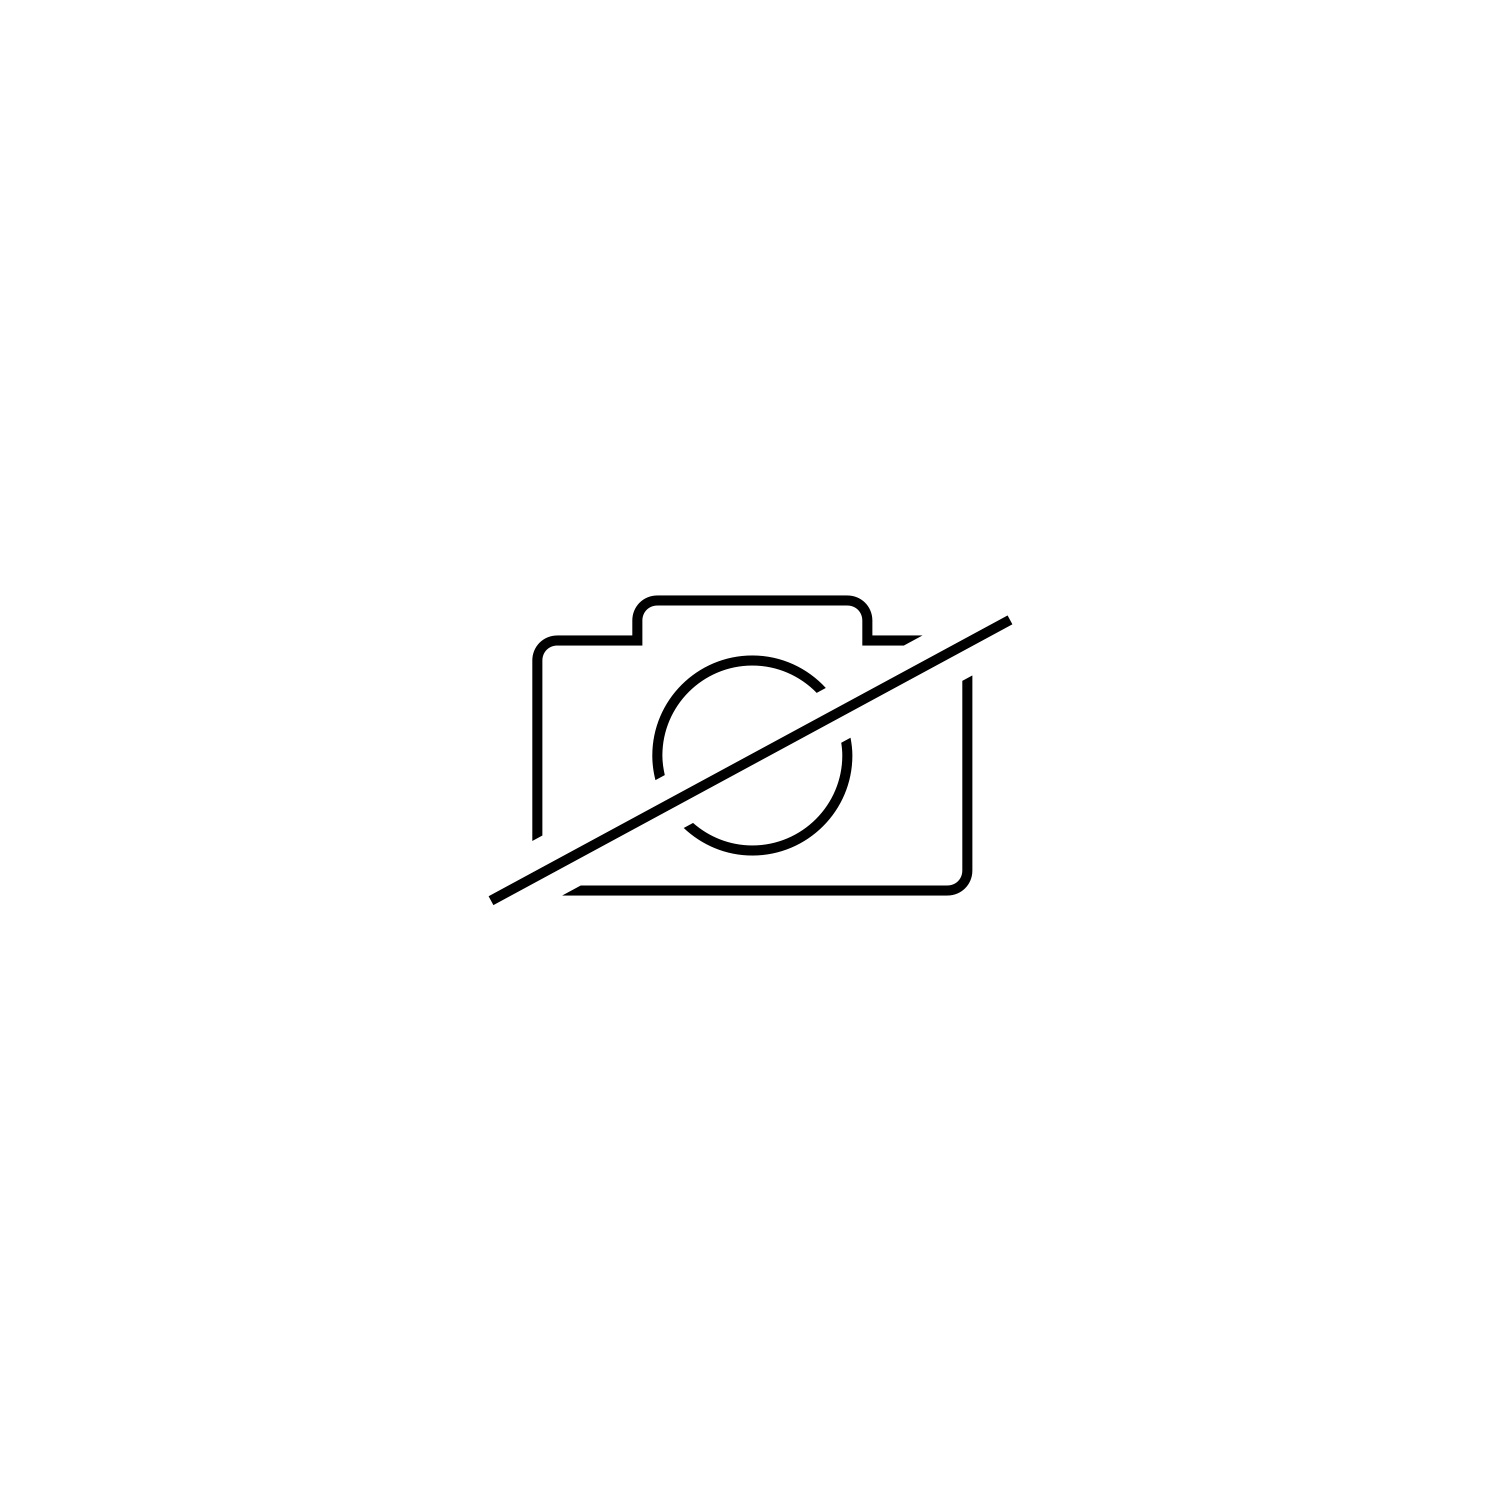 heritage Poloshirt, Mens, offwhite, L